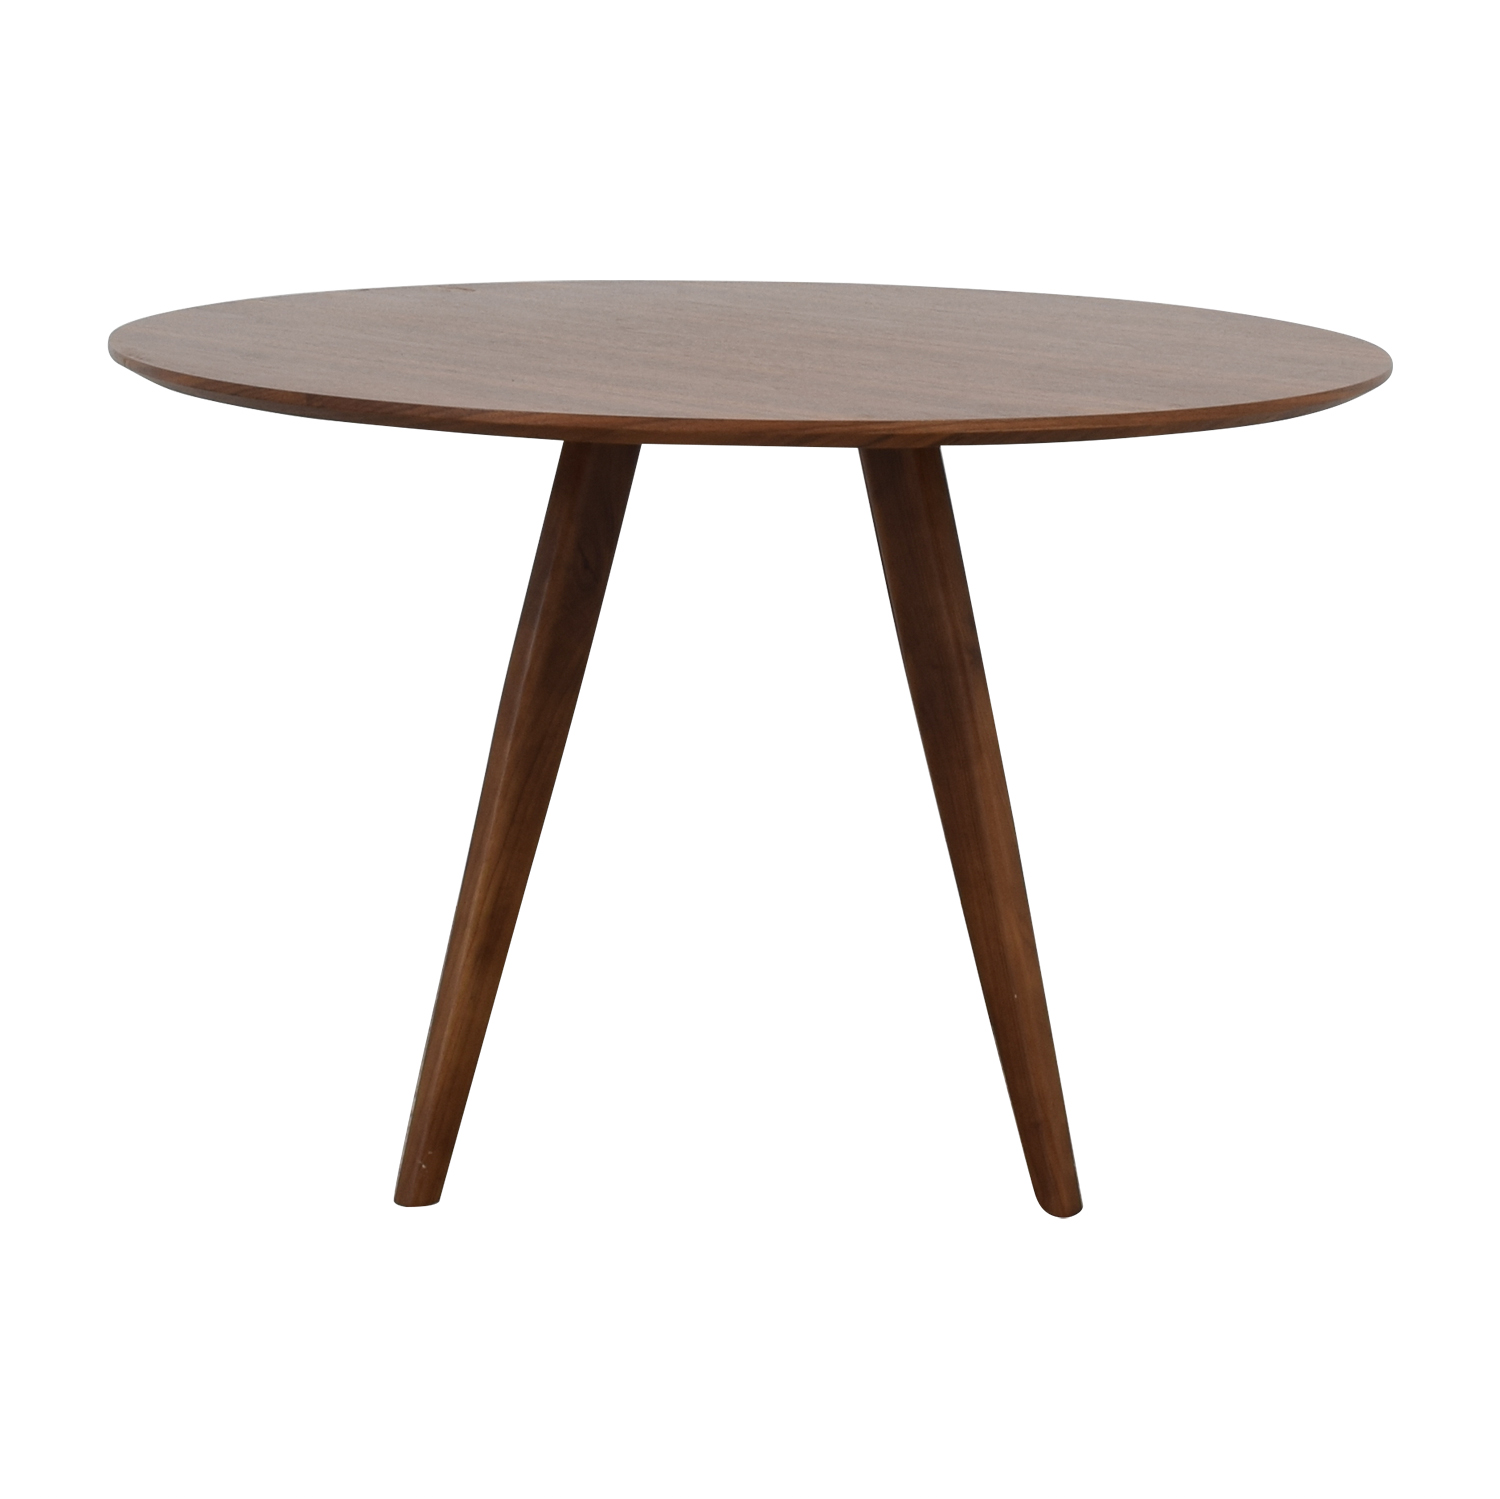 Aurelle Home Aurelle Home Sole Walnut Round Dining Table on sale